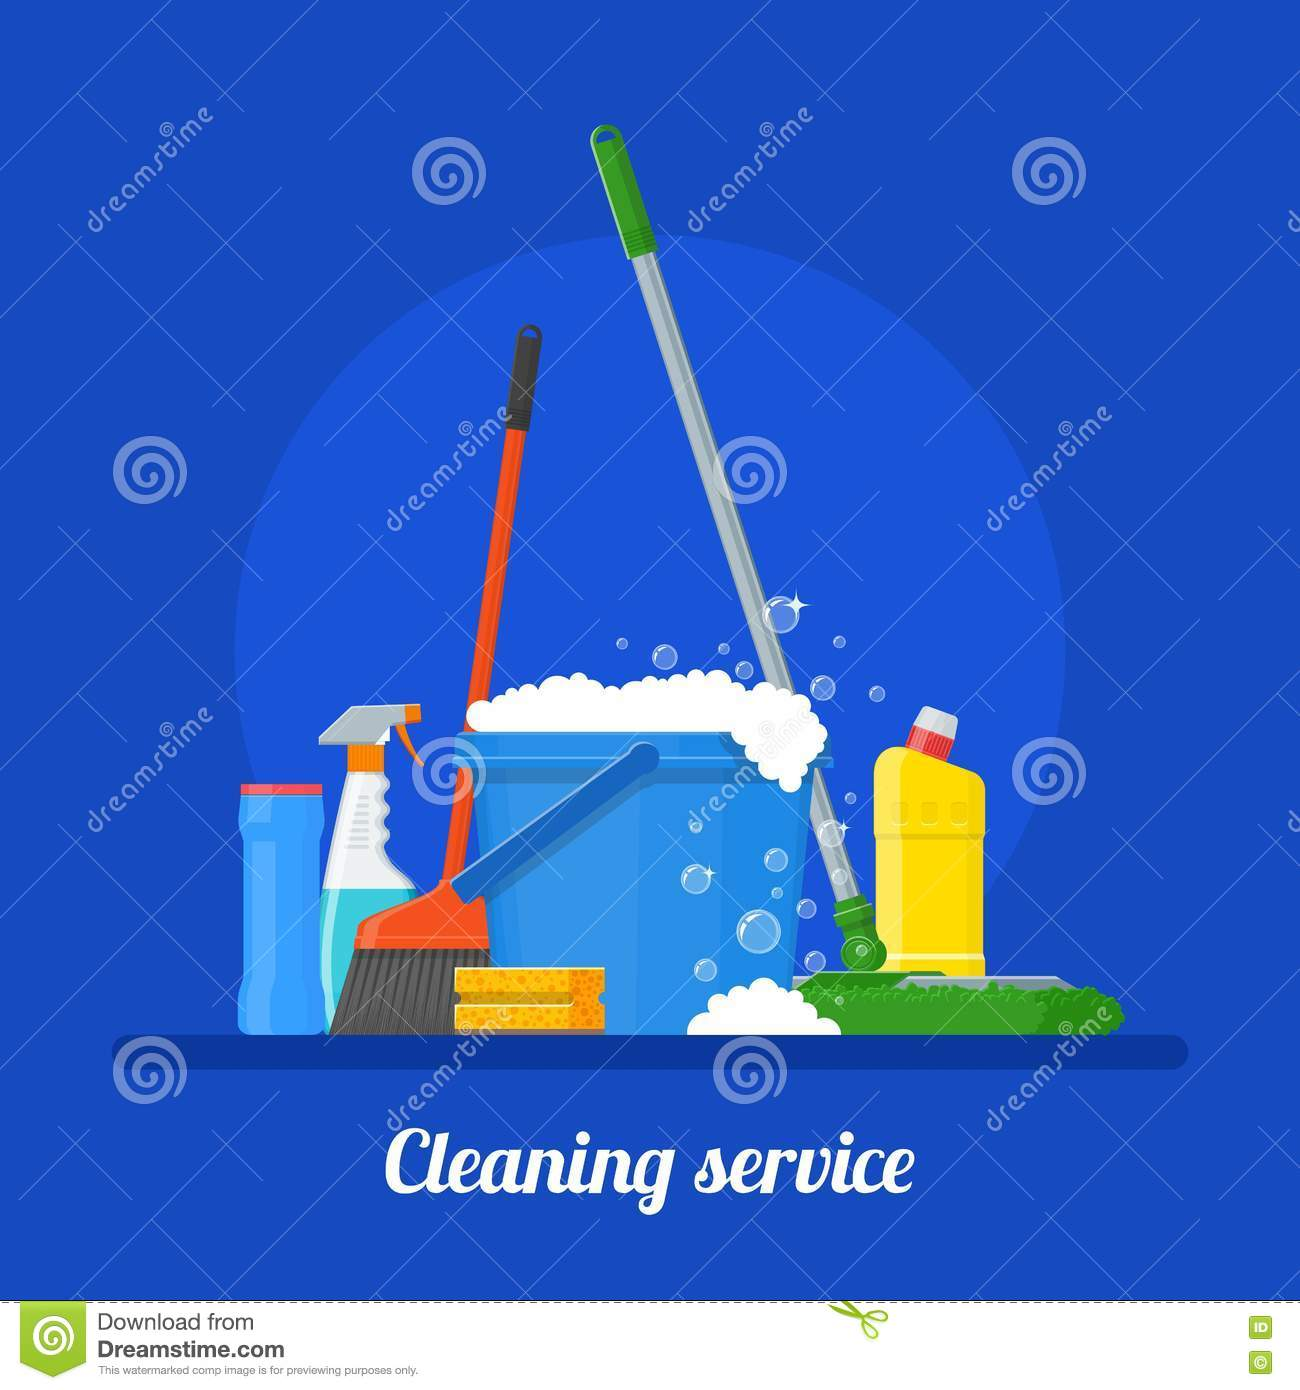 Poster design tools - Cleaning Service Company Concept Vector Illustration House Tools Poster Design In Flat Style Stock Vector